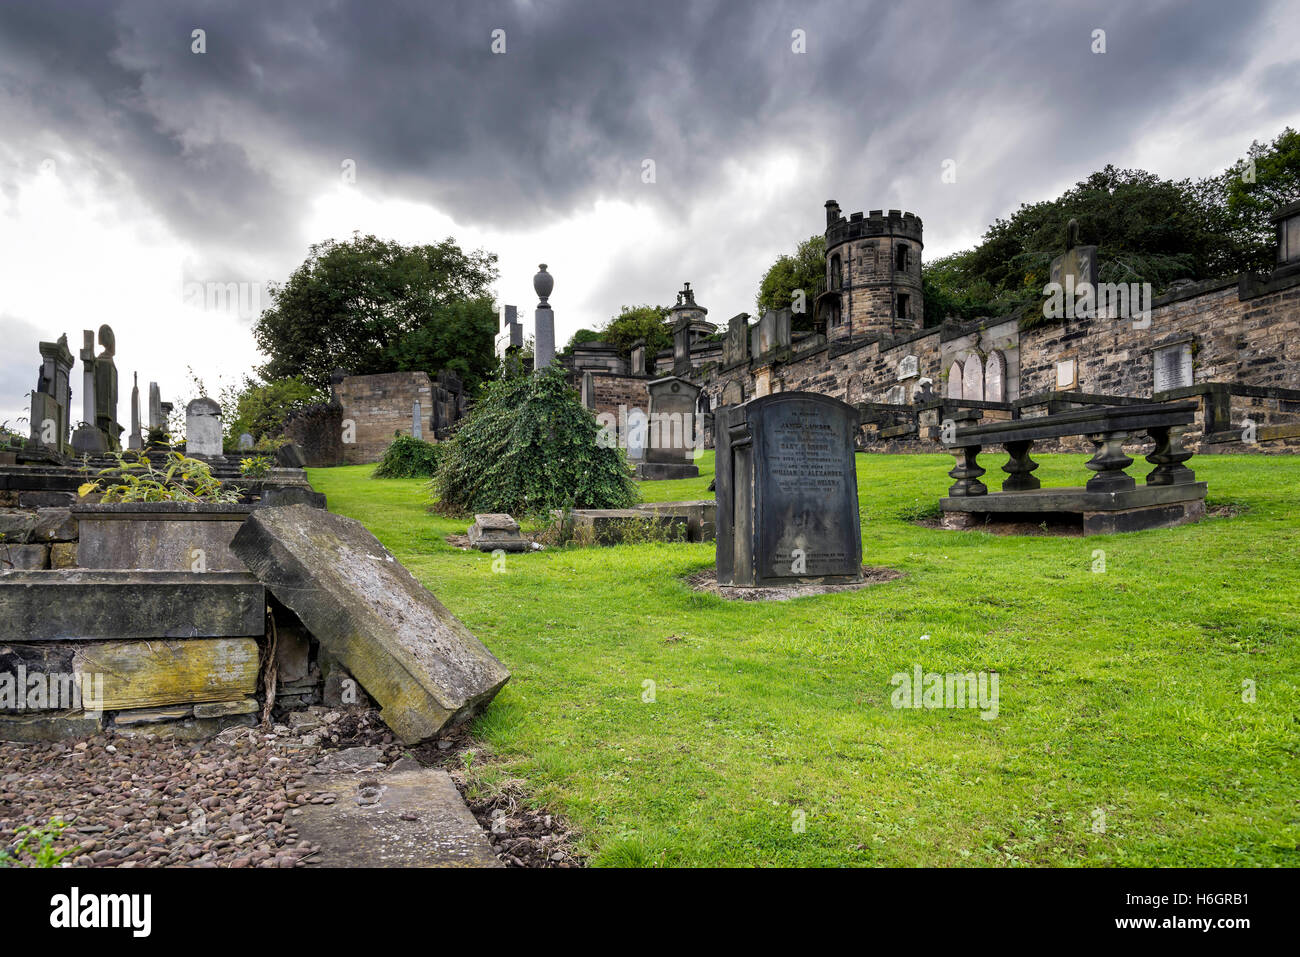 Edinburgh, United Kingdom - August 15, 2014: The Old Calton burial ground under dramatic sky. Is located at Calton Stock Photo